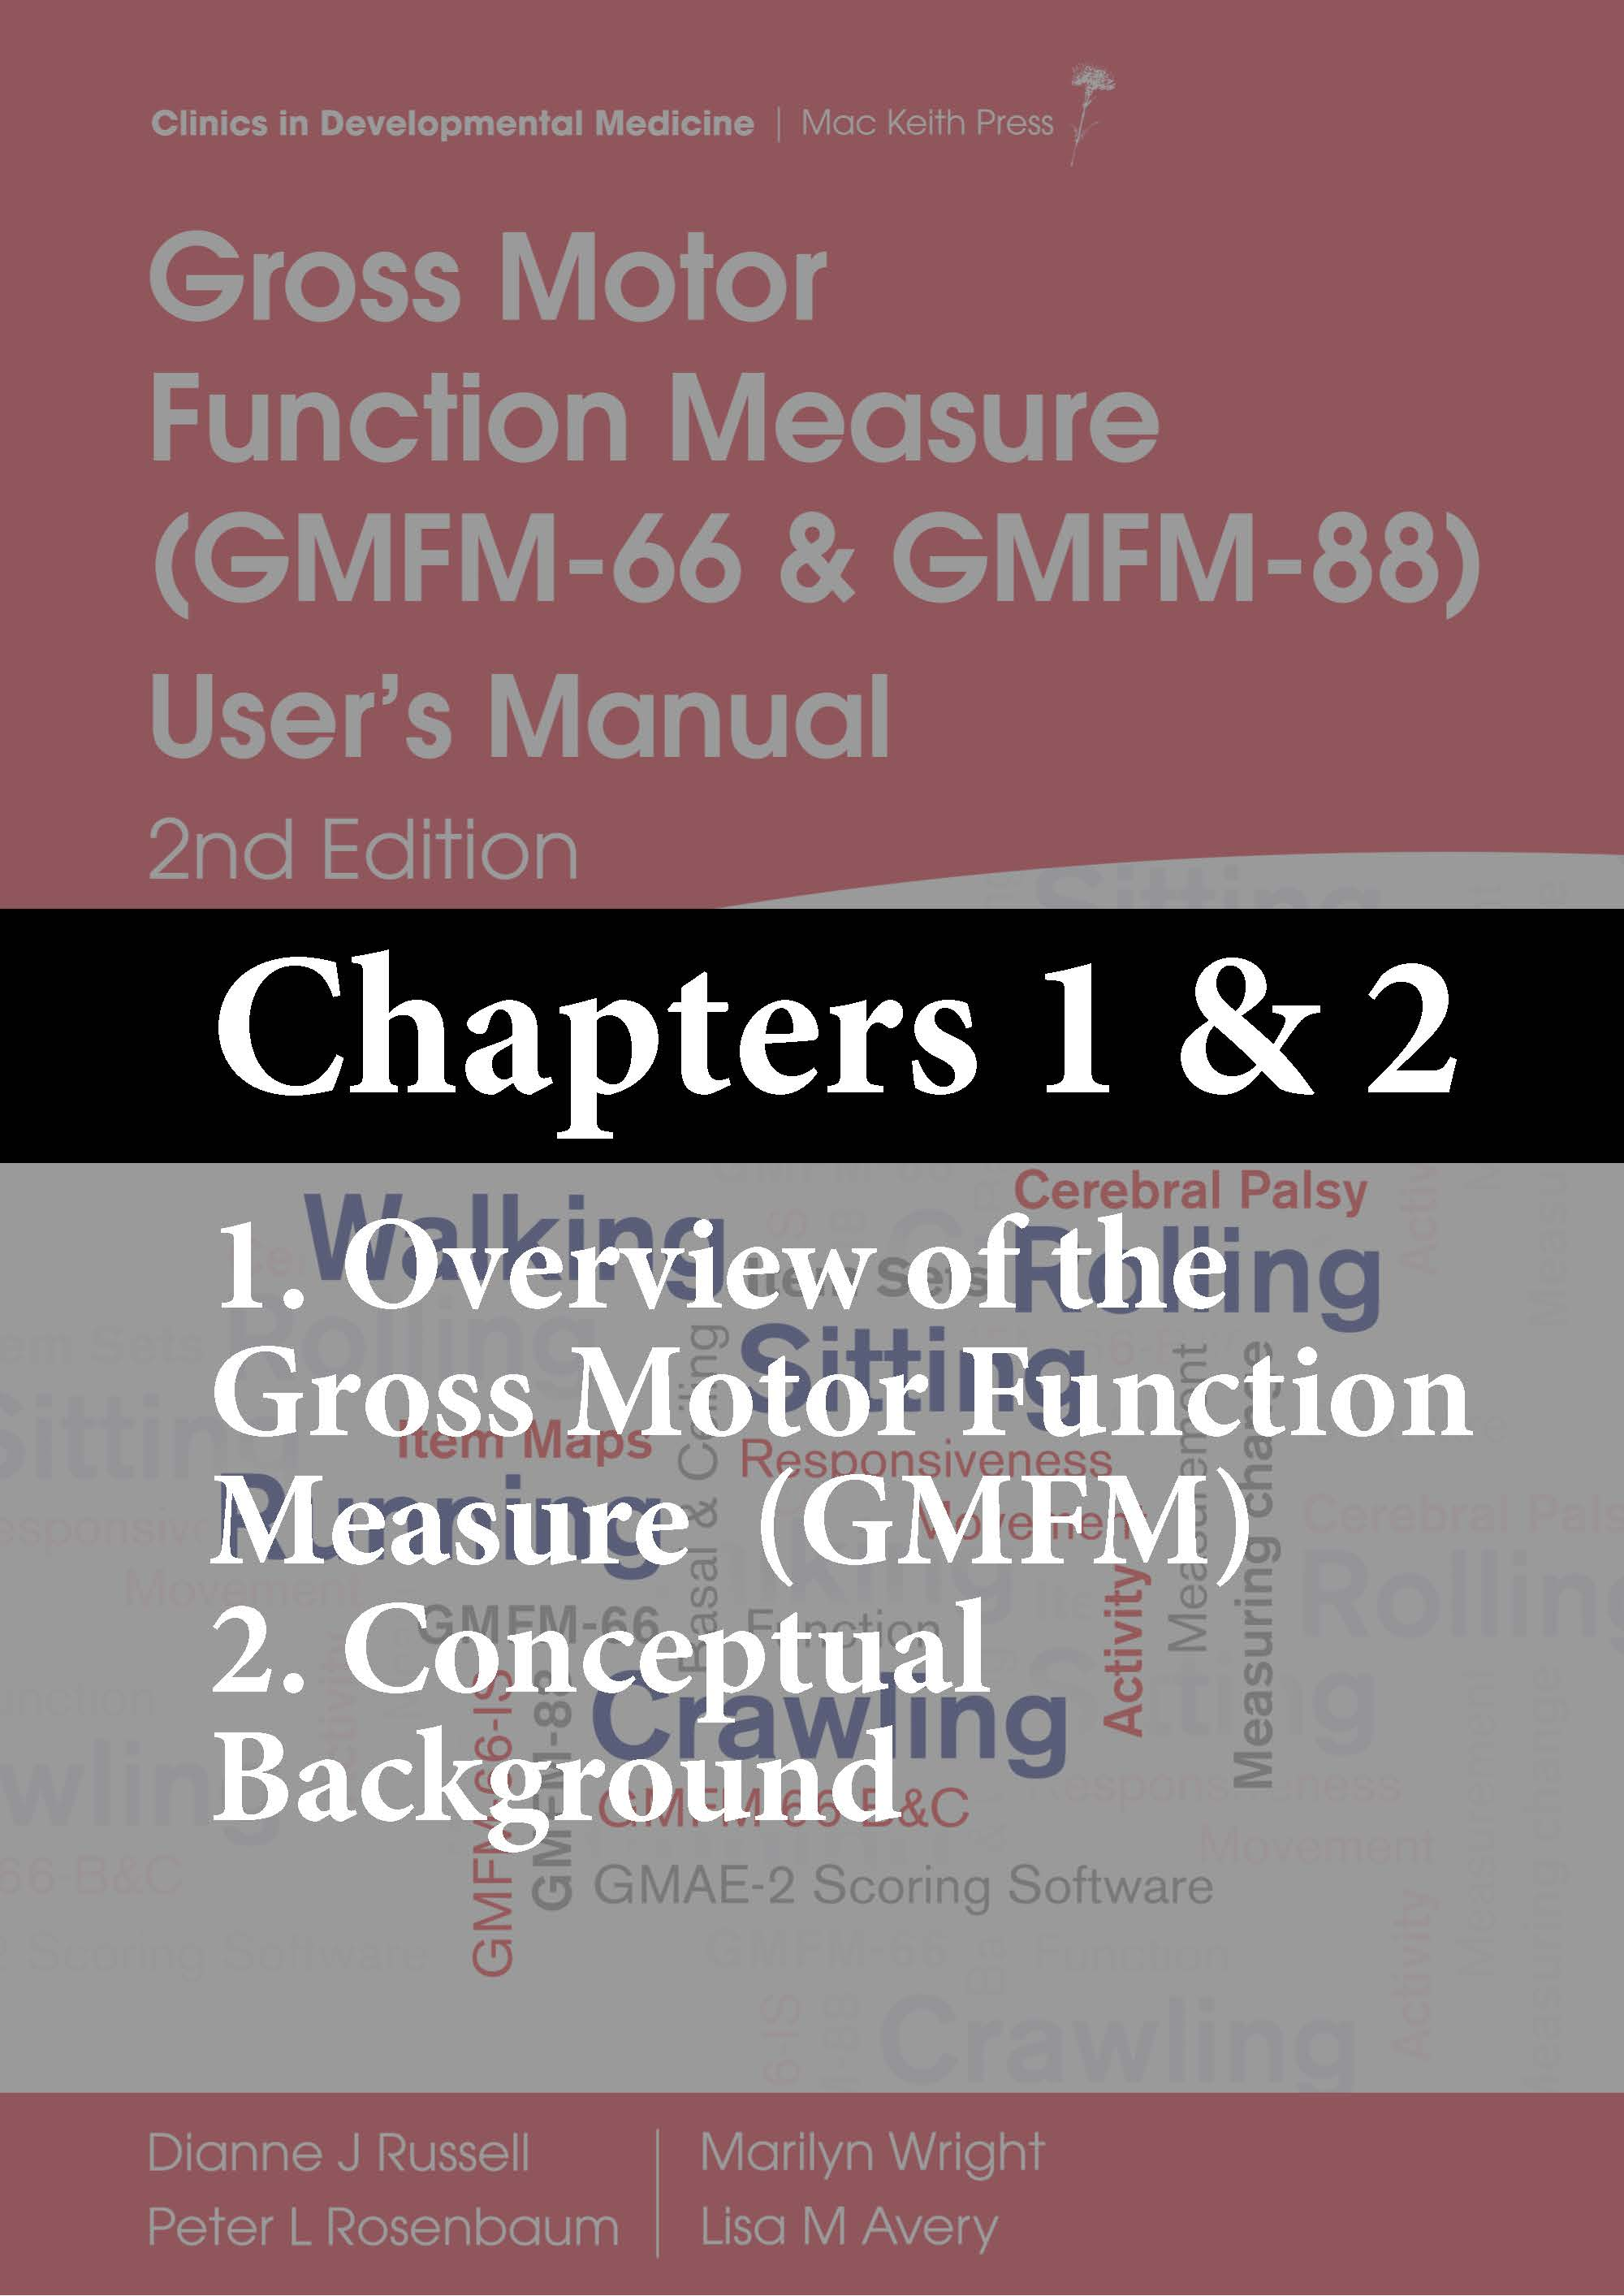 cdm-russell-gmfm-chapter-12cover